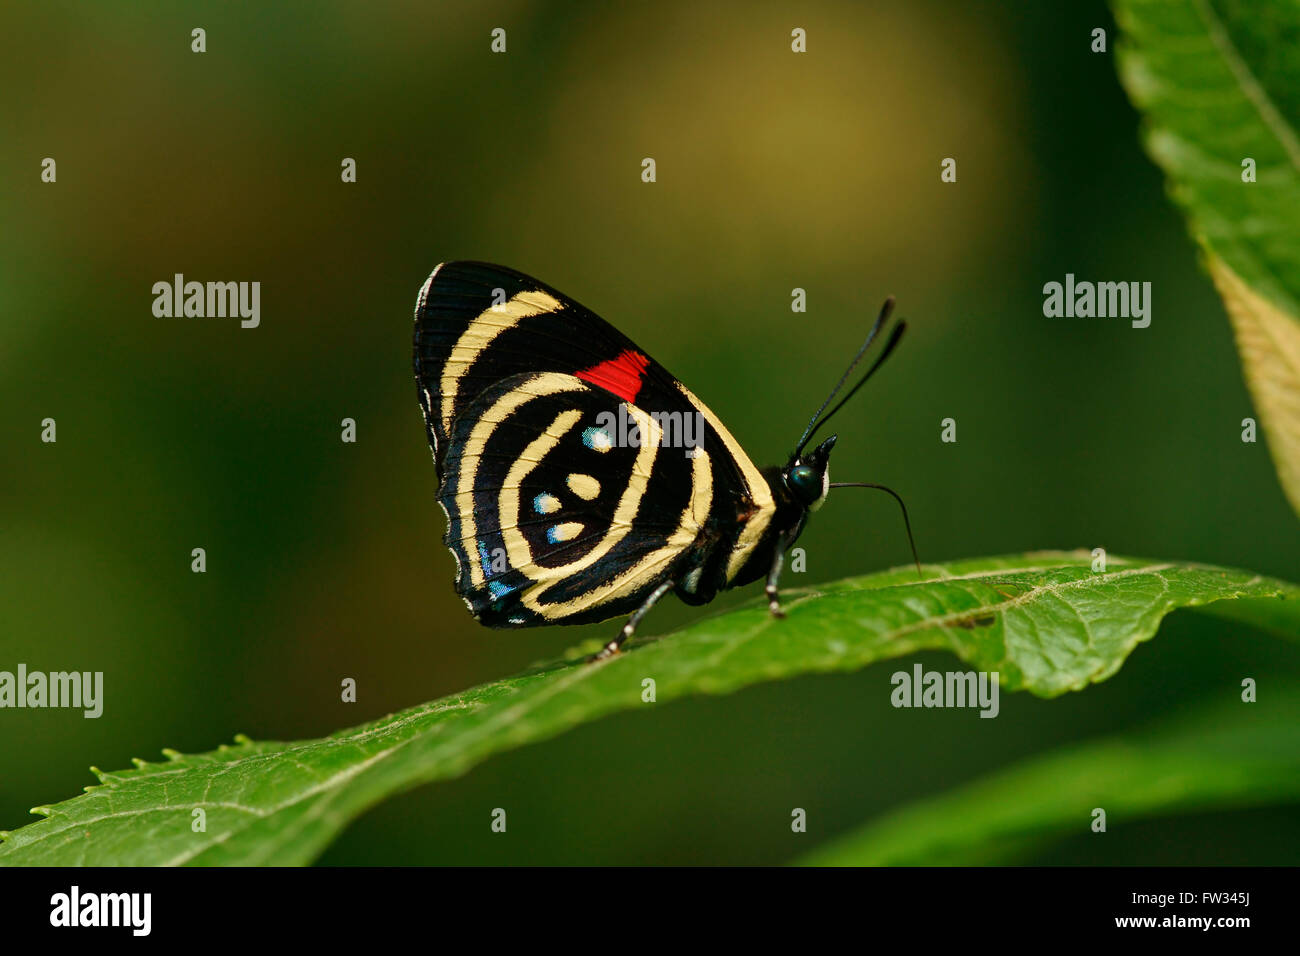 Nymphalidae (Nymphidae) Tropical Butterfly, Hydaspes Eighty-eight or Little Callicore (Callicore hydaspes) - Stock Image